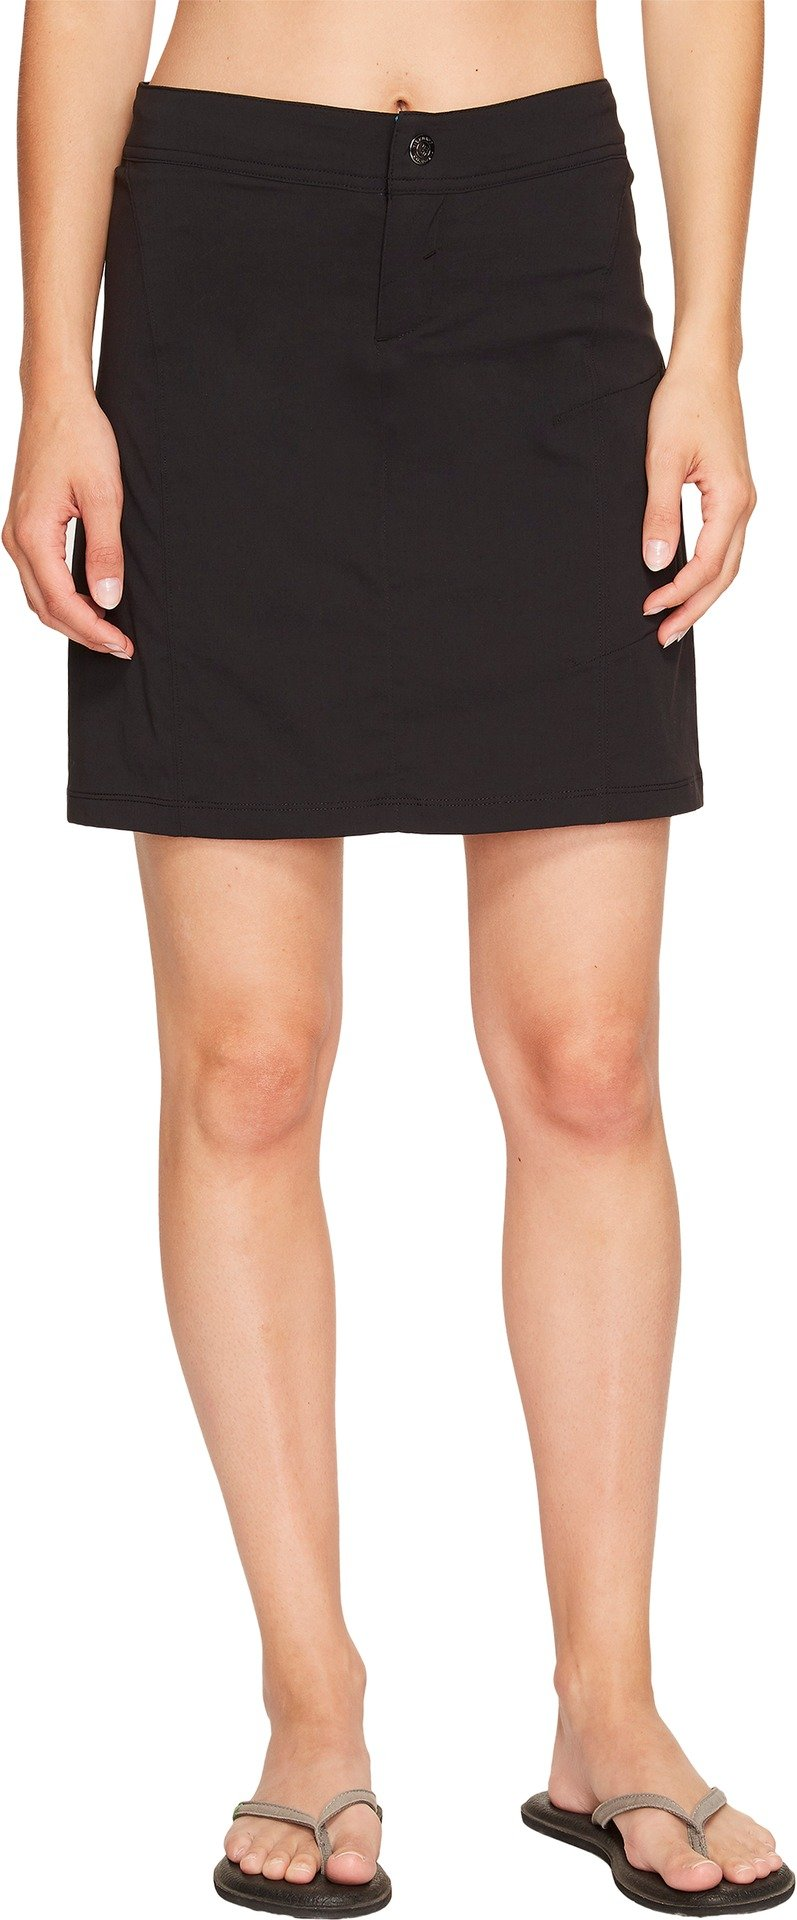 Columbia Women's Just Right Skort, Water & Stain Resistant, Black, 12 by Columbia